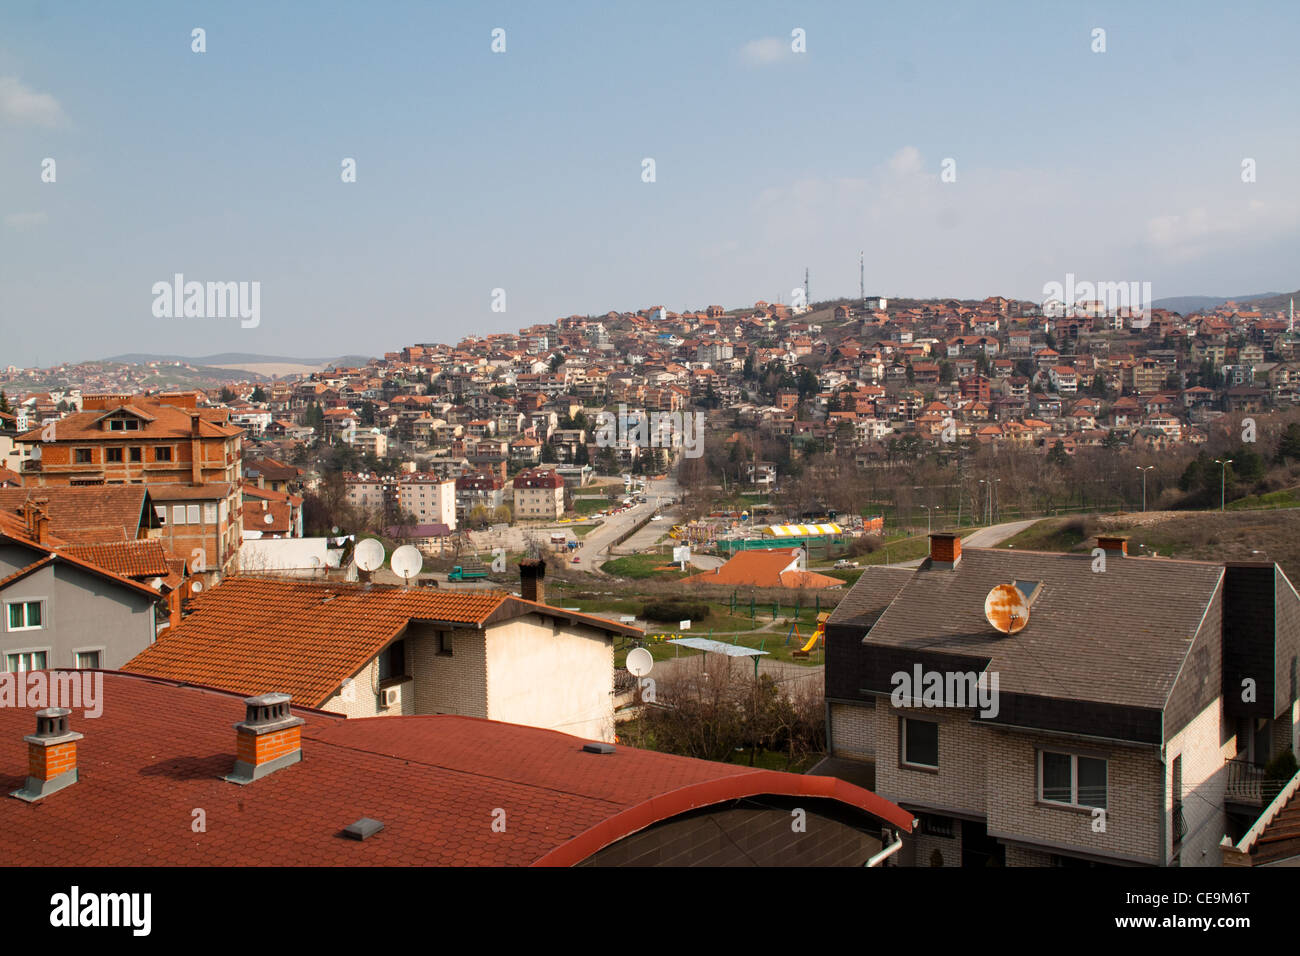 View over the city of Pristina in Kosovo - Stock Image